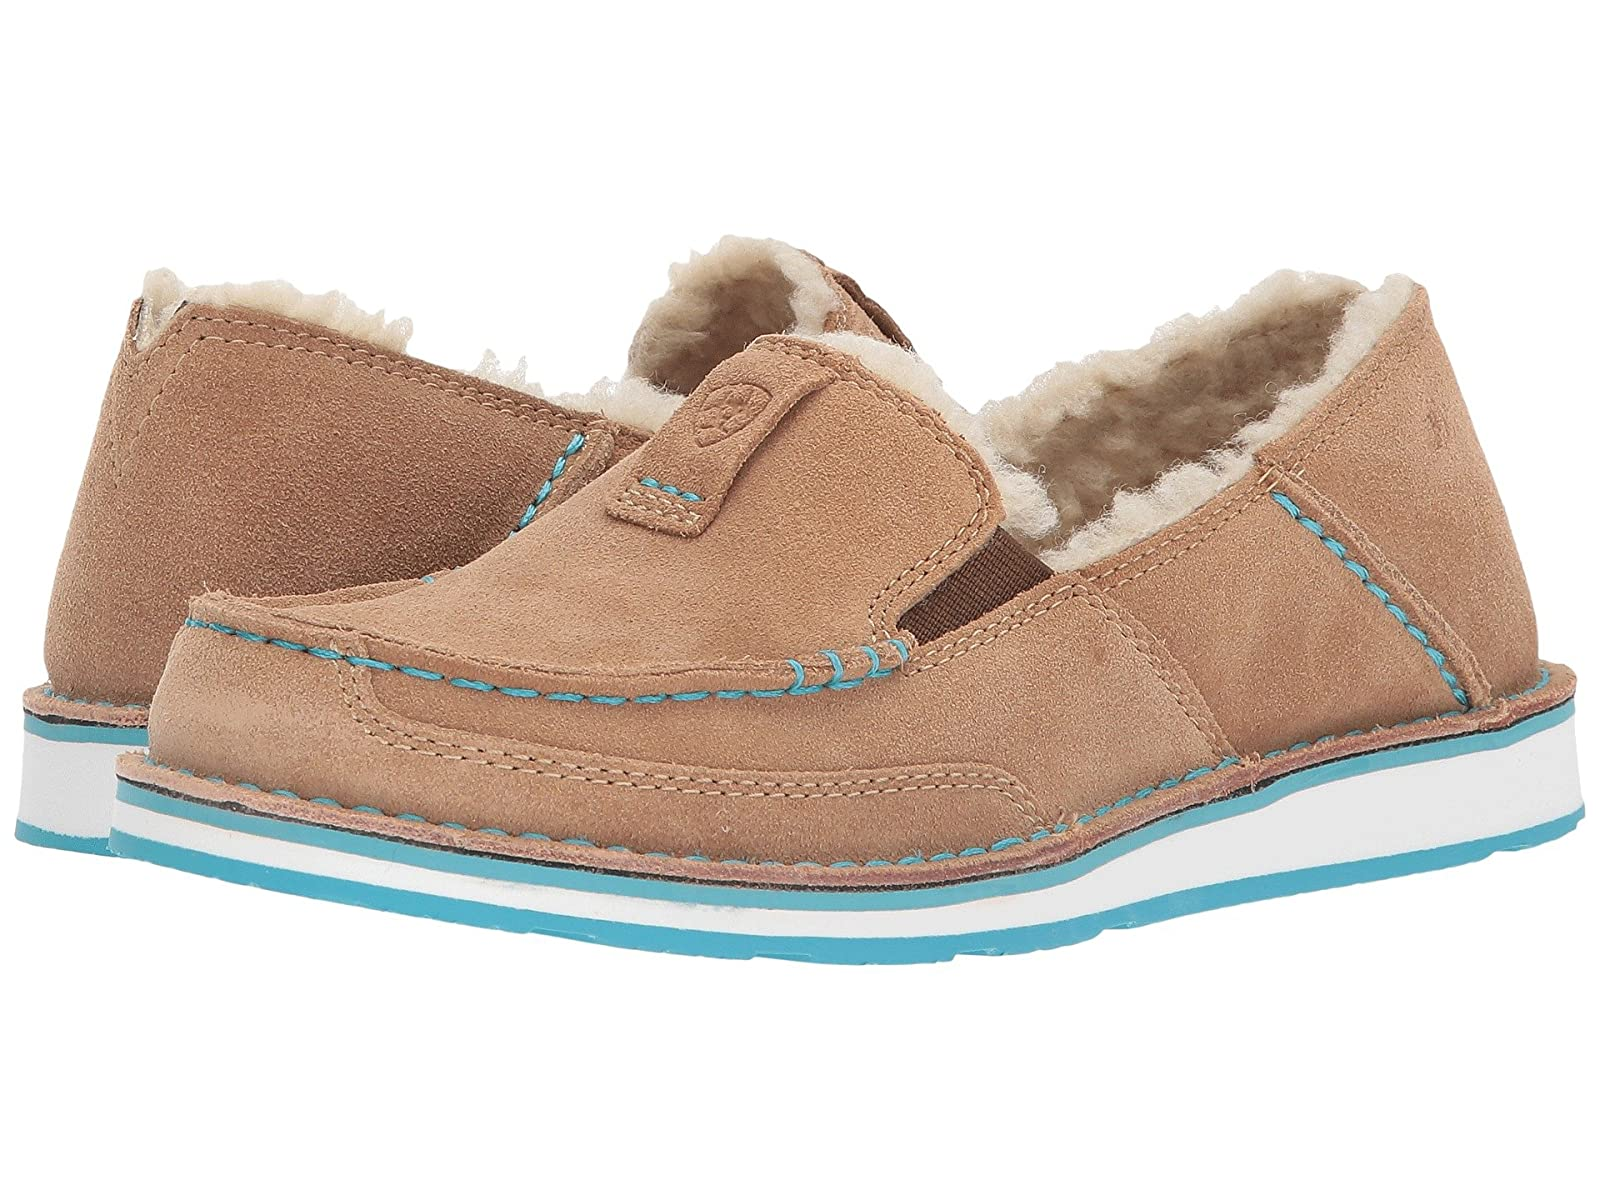 Ariat Cruiser FleeceAtmospheric grades have affordable shoes